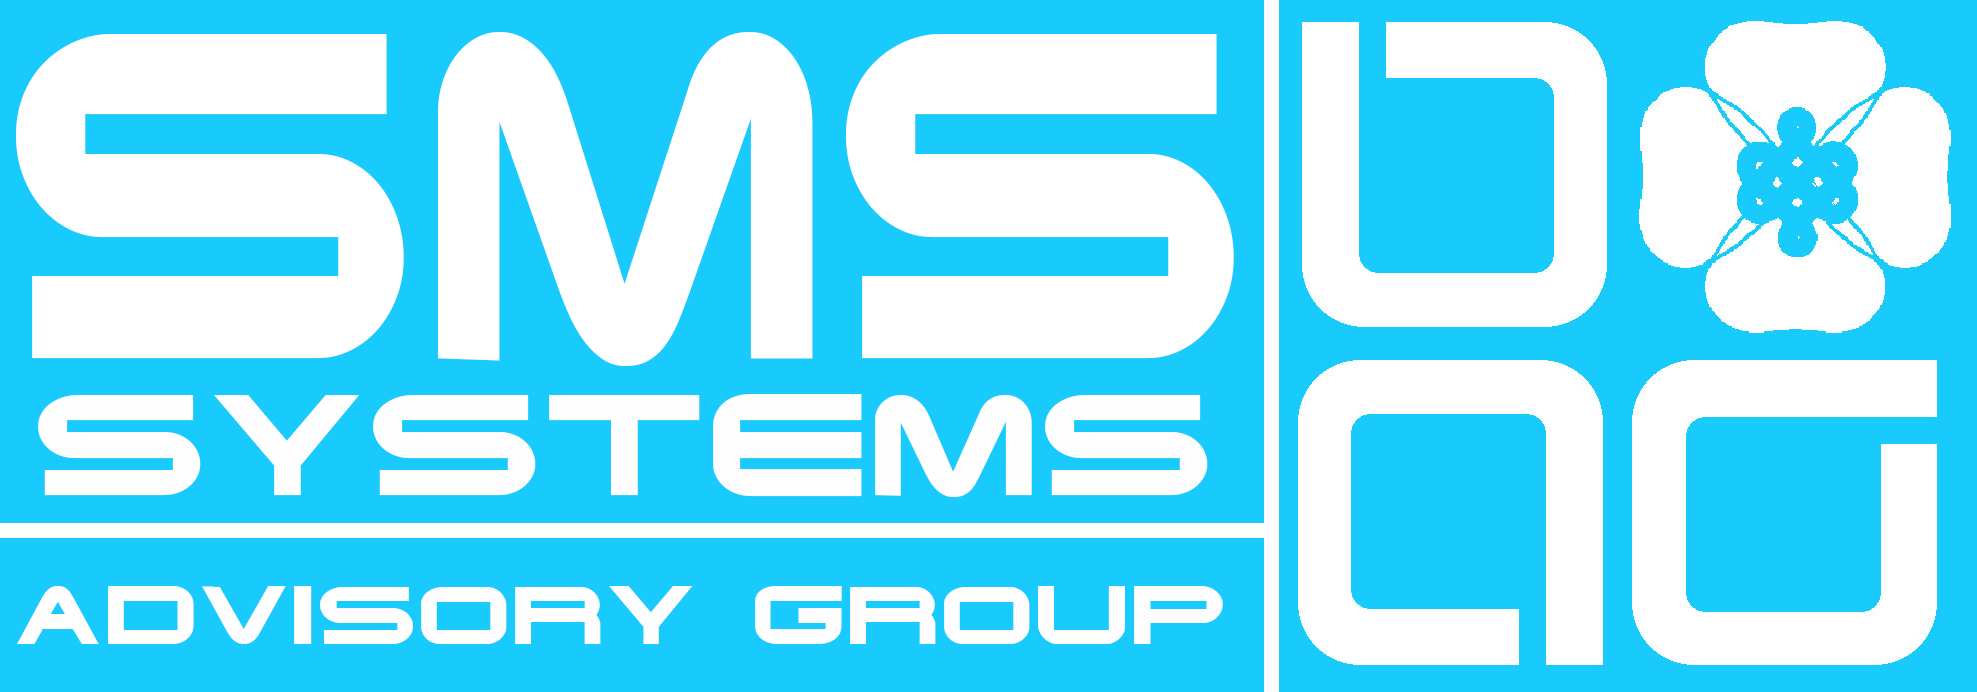 SMS-Systems Advisory Group